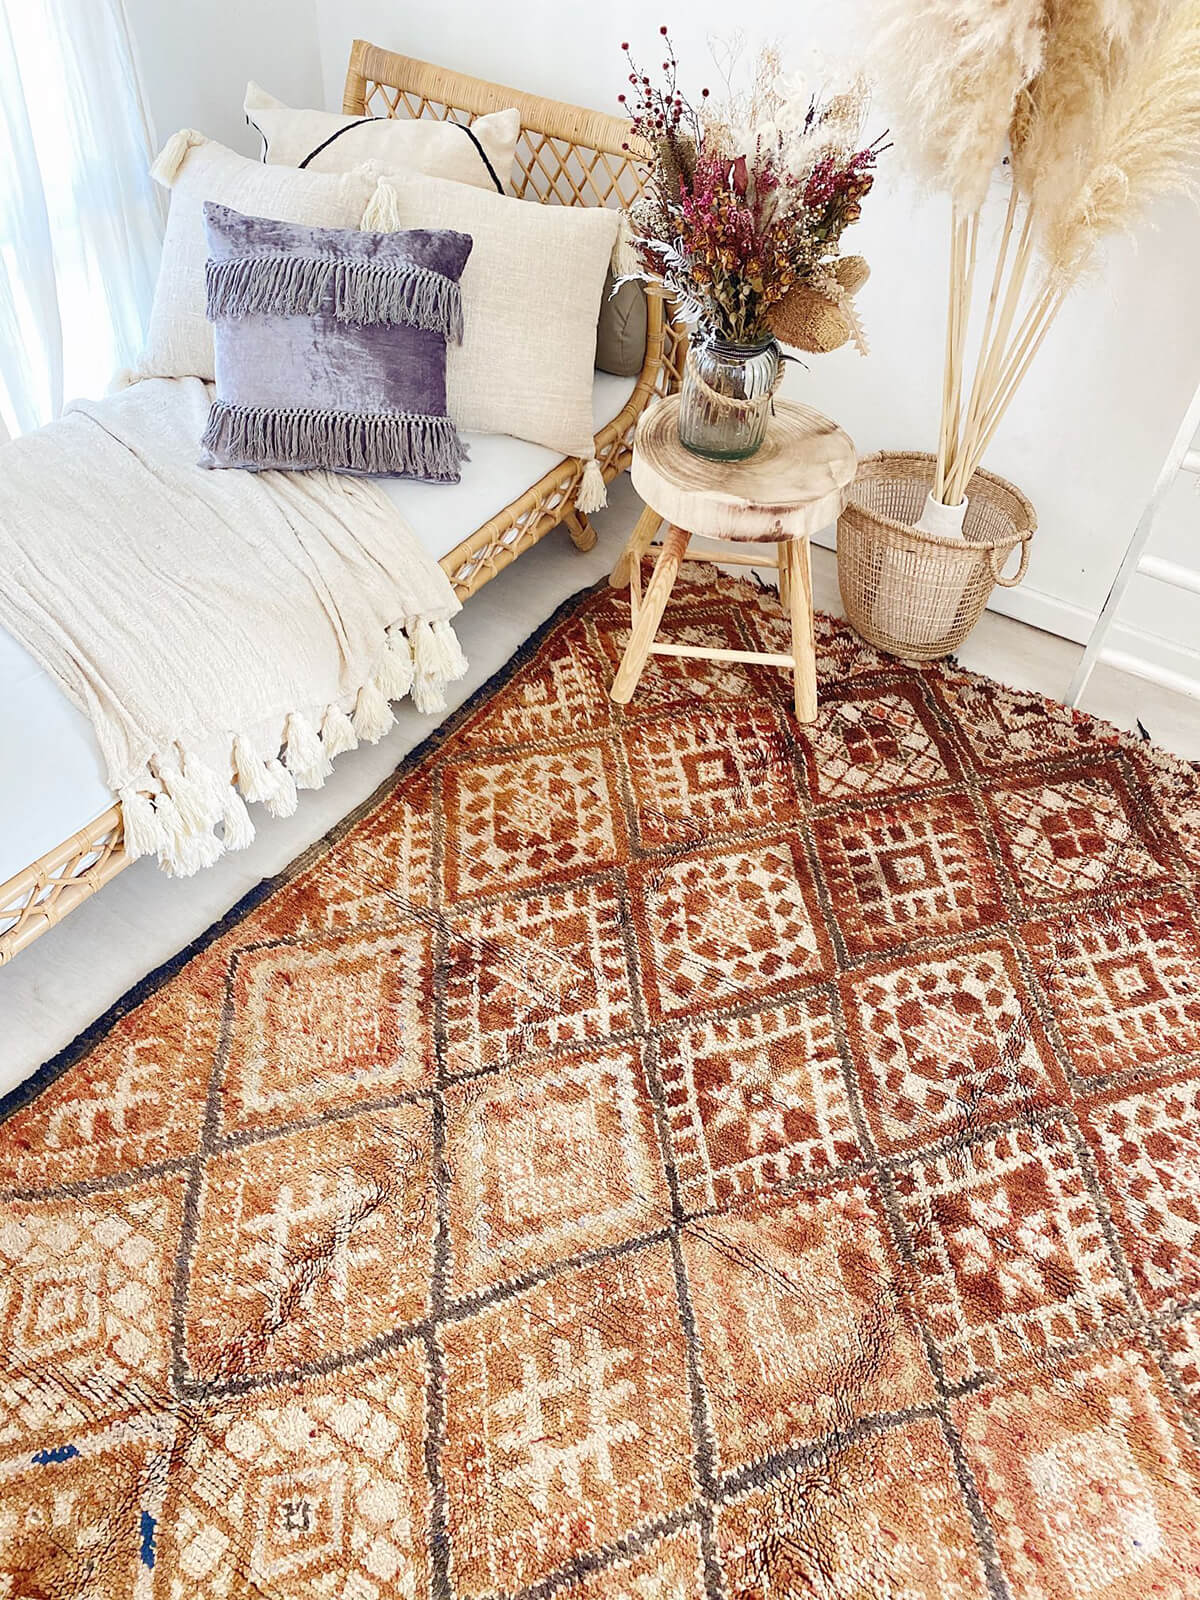 Artisanal Hand-Made Moroccan Rug with Fringed Edge